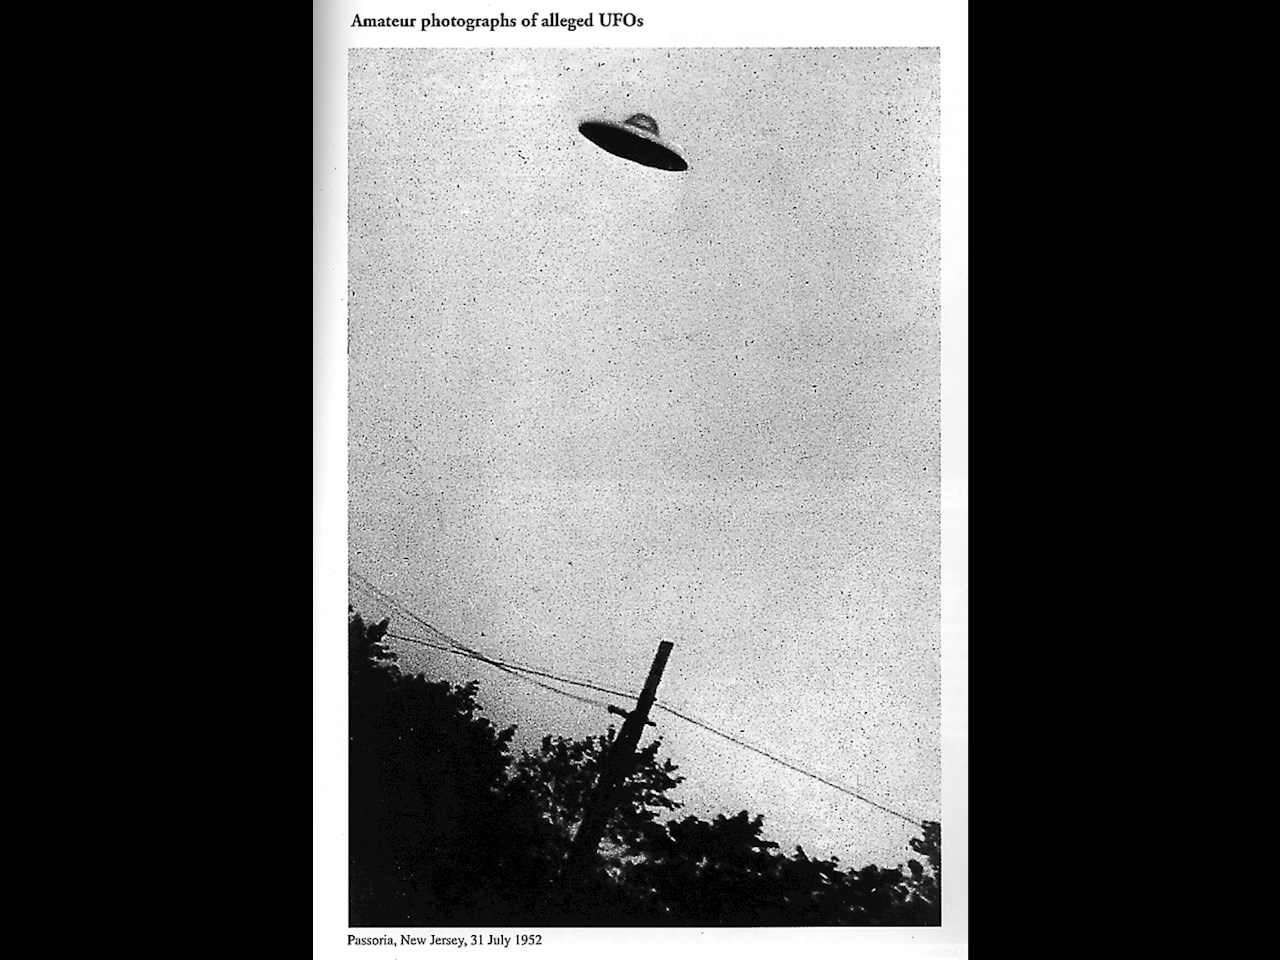 Amature photographs of alleged UFOs